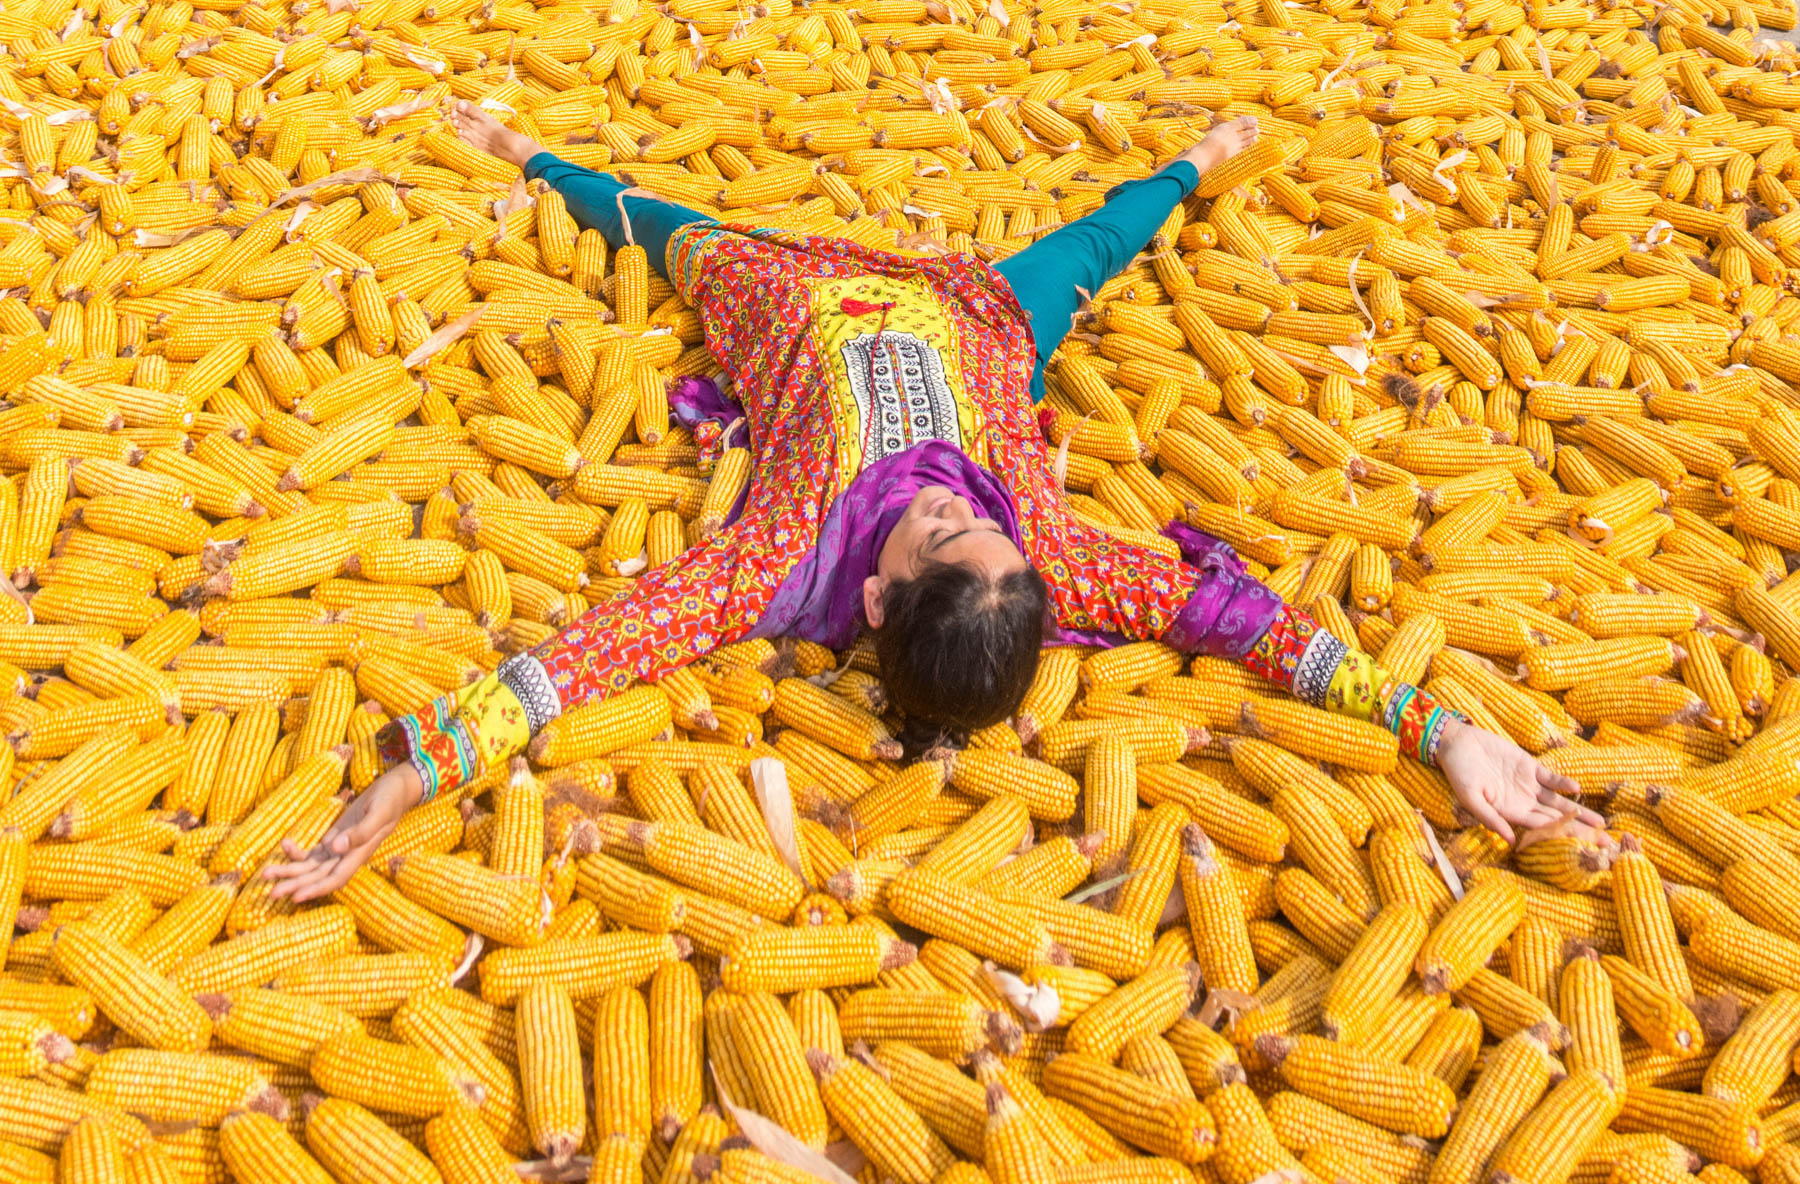 How to stop sweating while traveling - Patterned clothes in a sea of yellow corn - Lost With Purpose